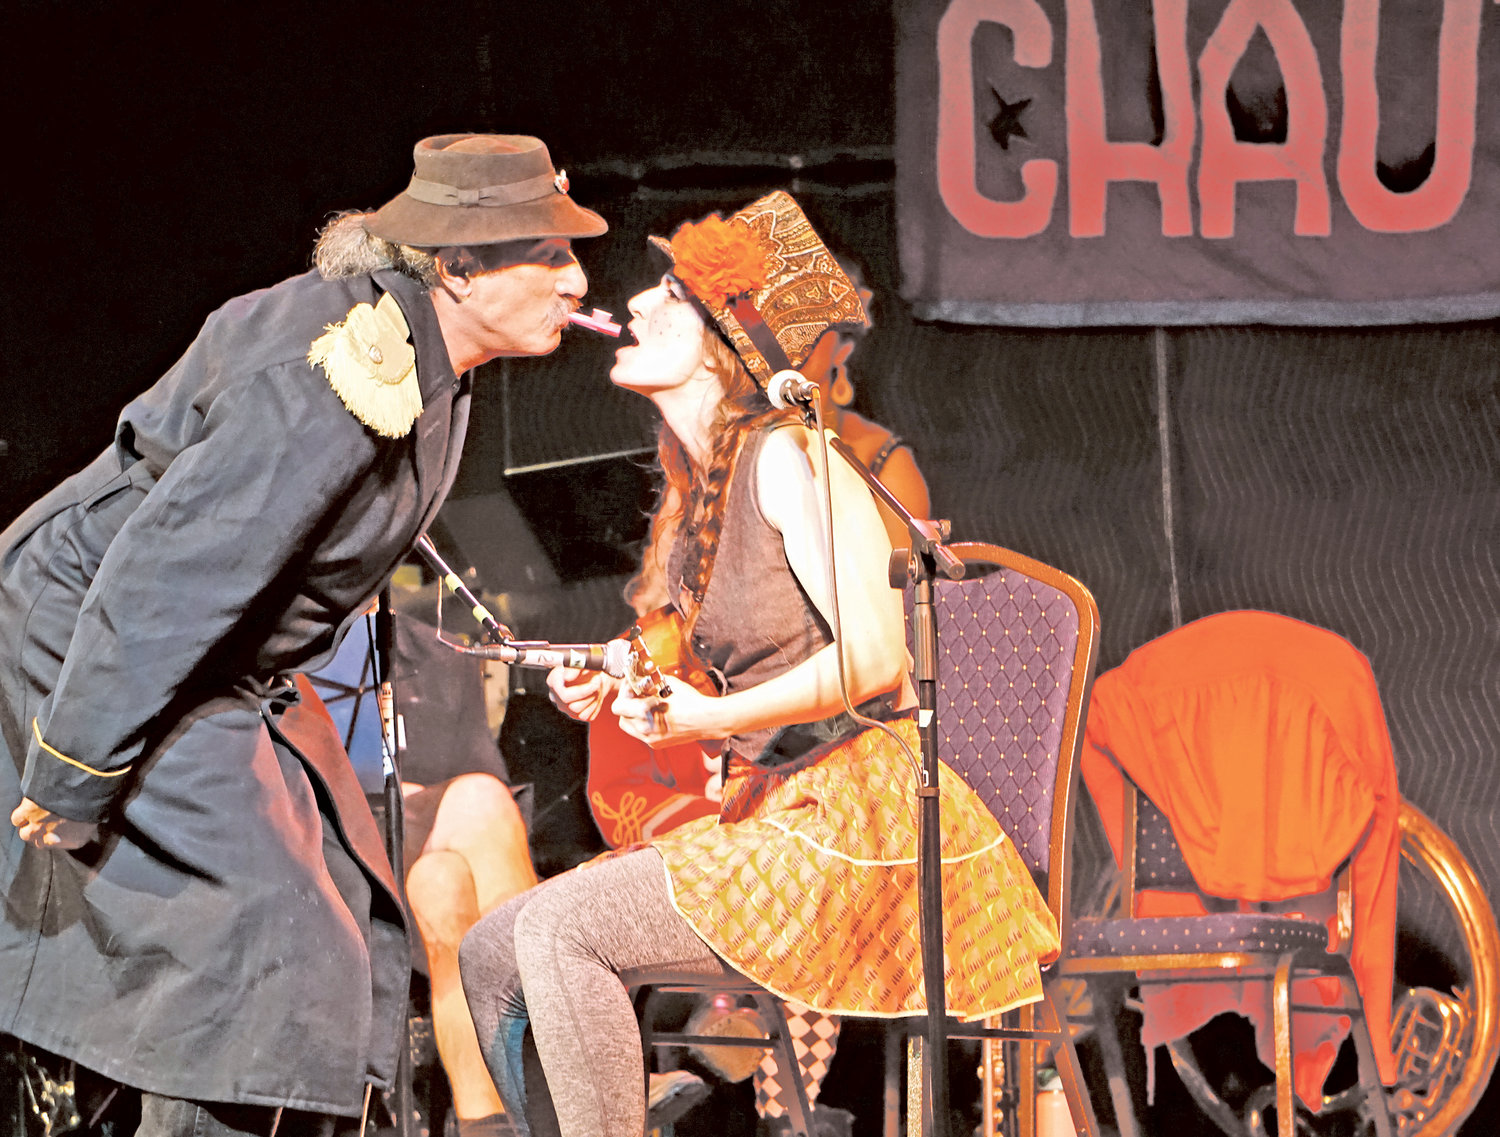 Paul Magid, one of the founders of the New Old Time Chautauqua, and singer Fiona Rose trade the kazoo.